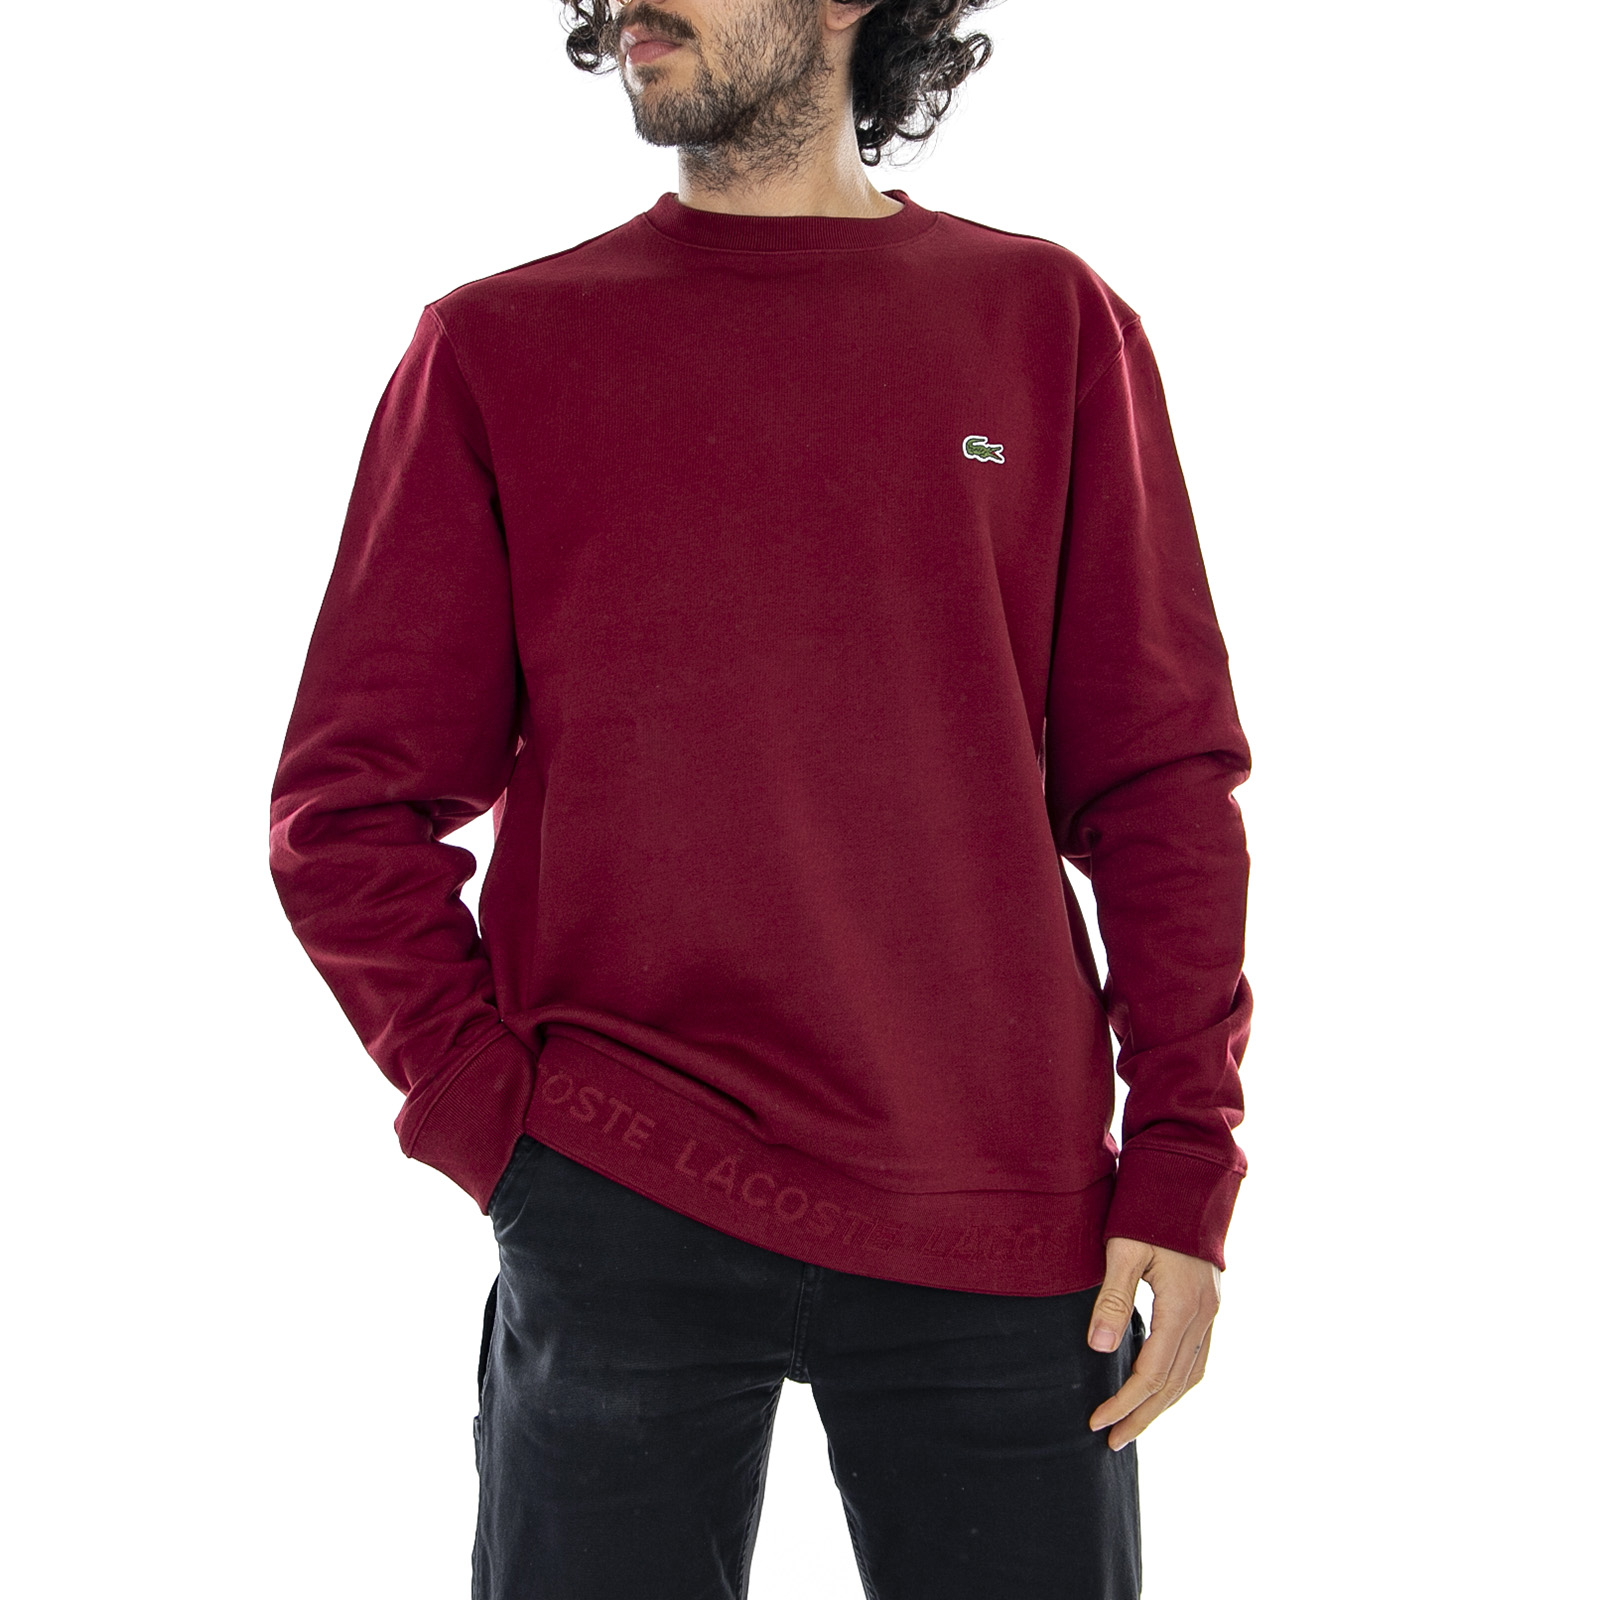 info for 1510b 59fd1 Dettagli su Lacoste Logo Sweat - Bordeaux - Felpa Girocollo Uomo Bordeaux